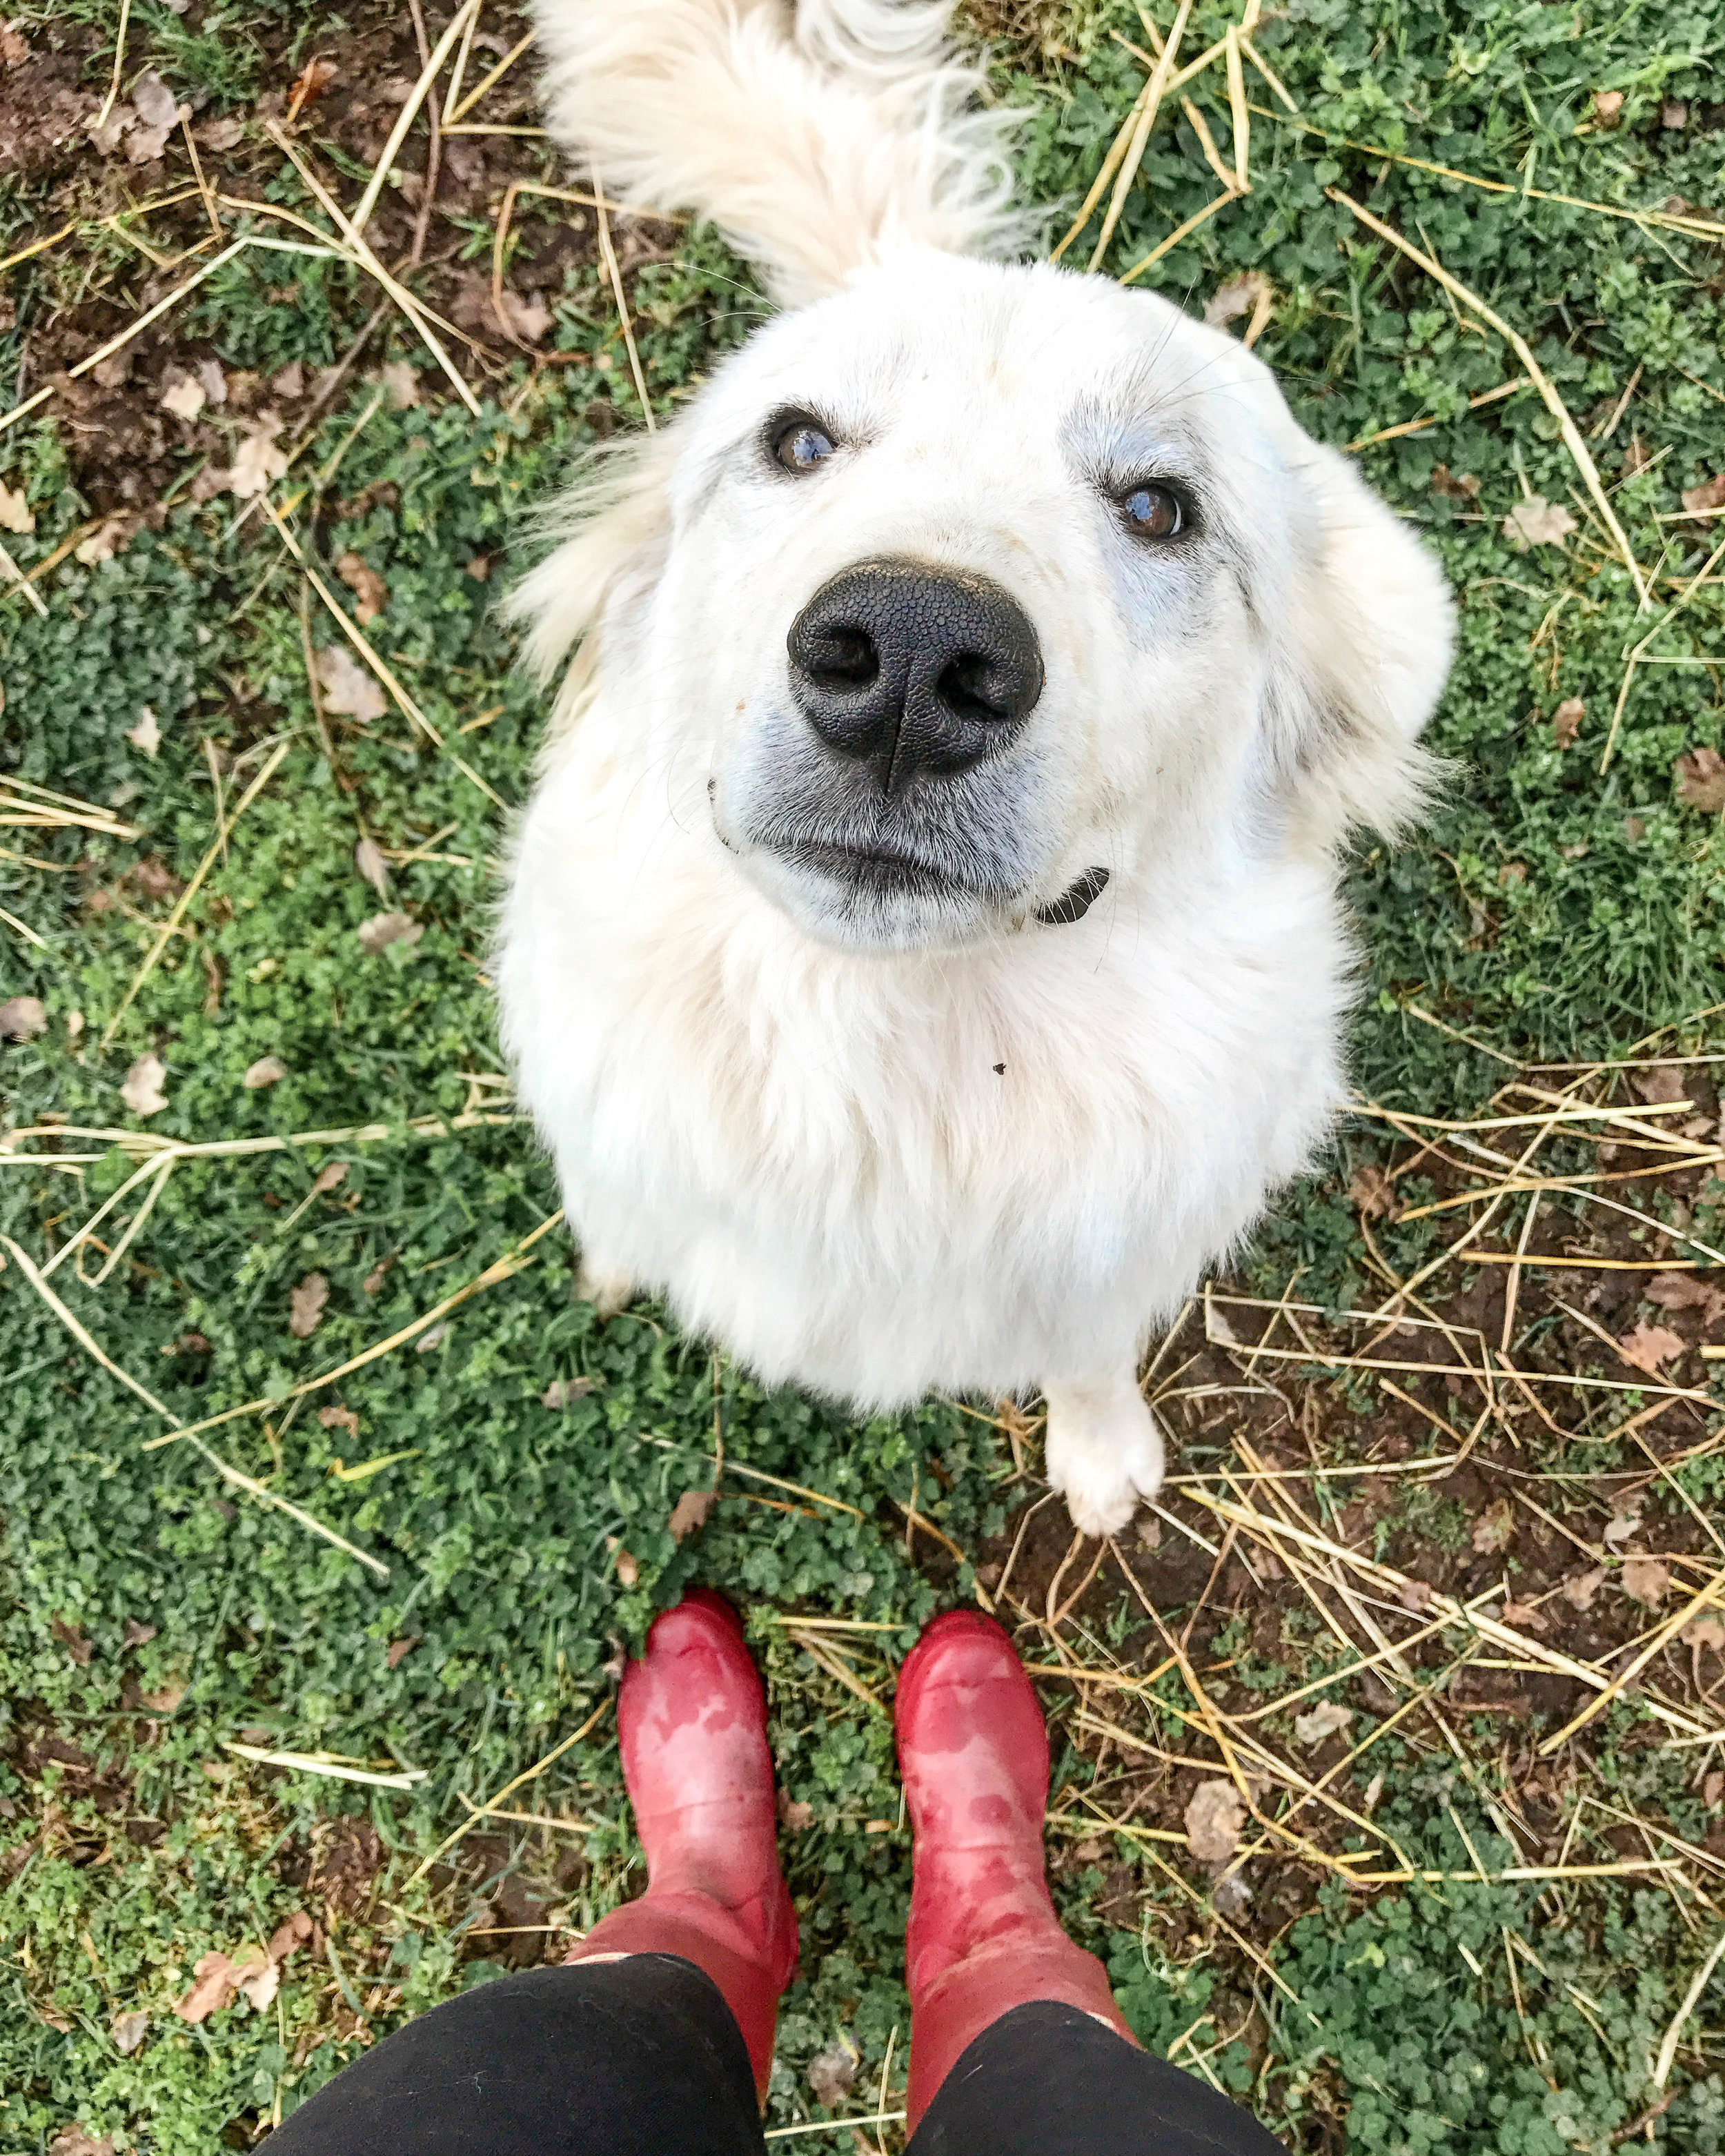 Livestock Dog #greatpyrenees, #livestockdog, #dog, #guarddog, #livestockdoginfo